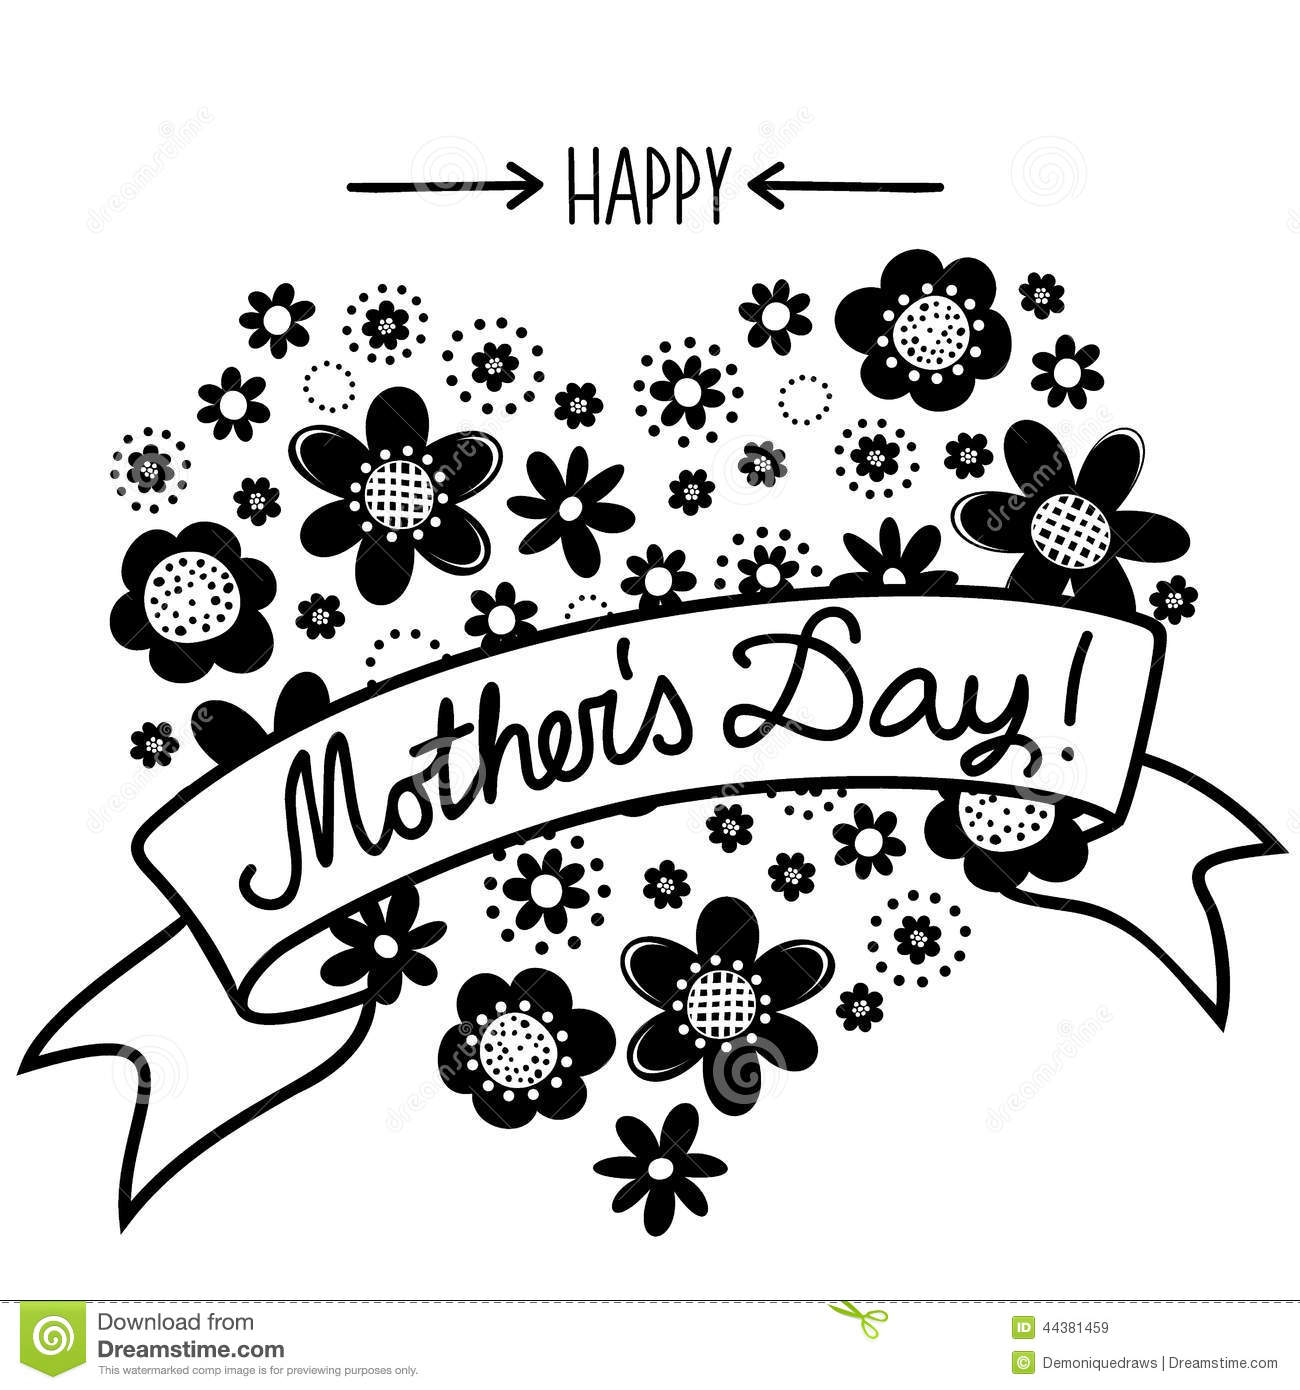 ... heart shape on white background with banner Happy Mother's Day card